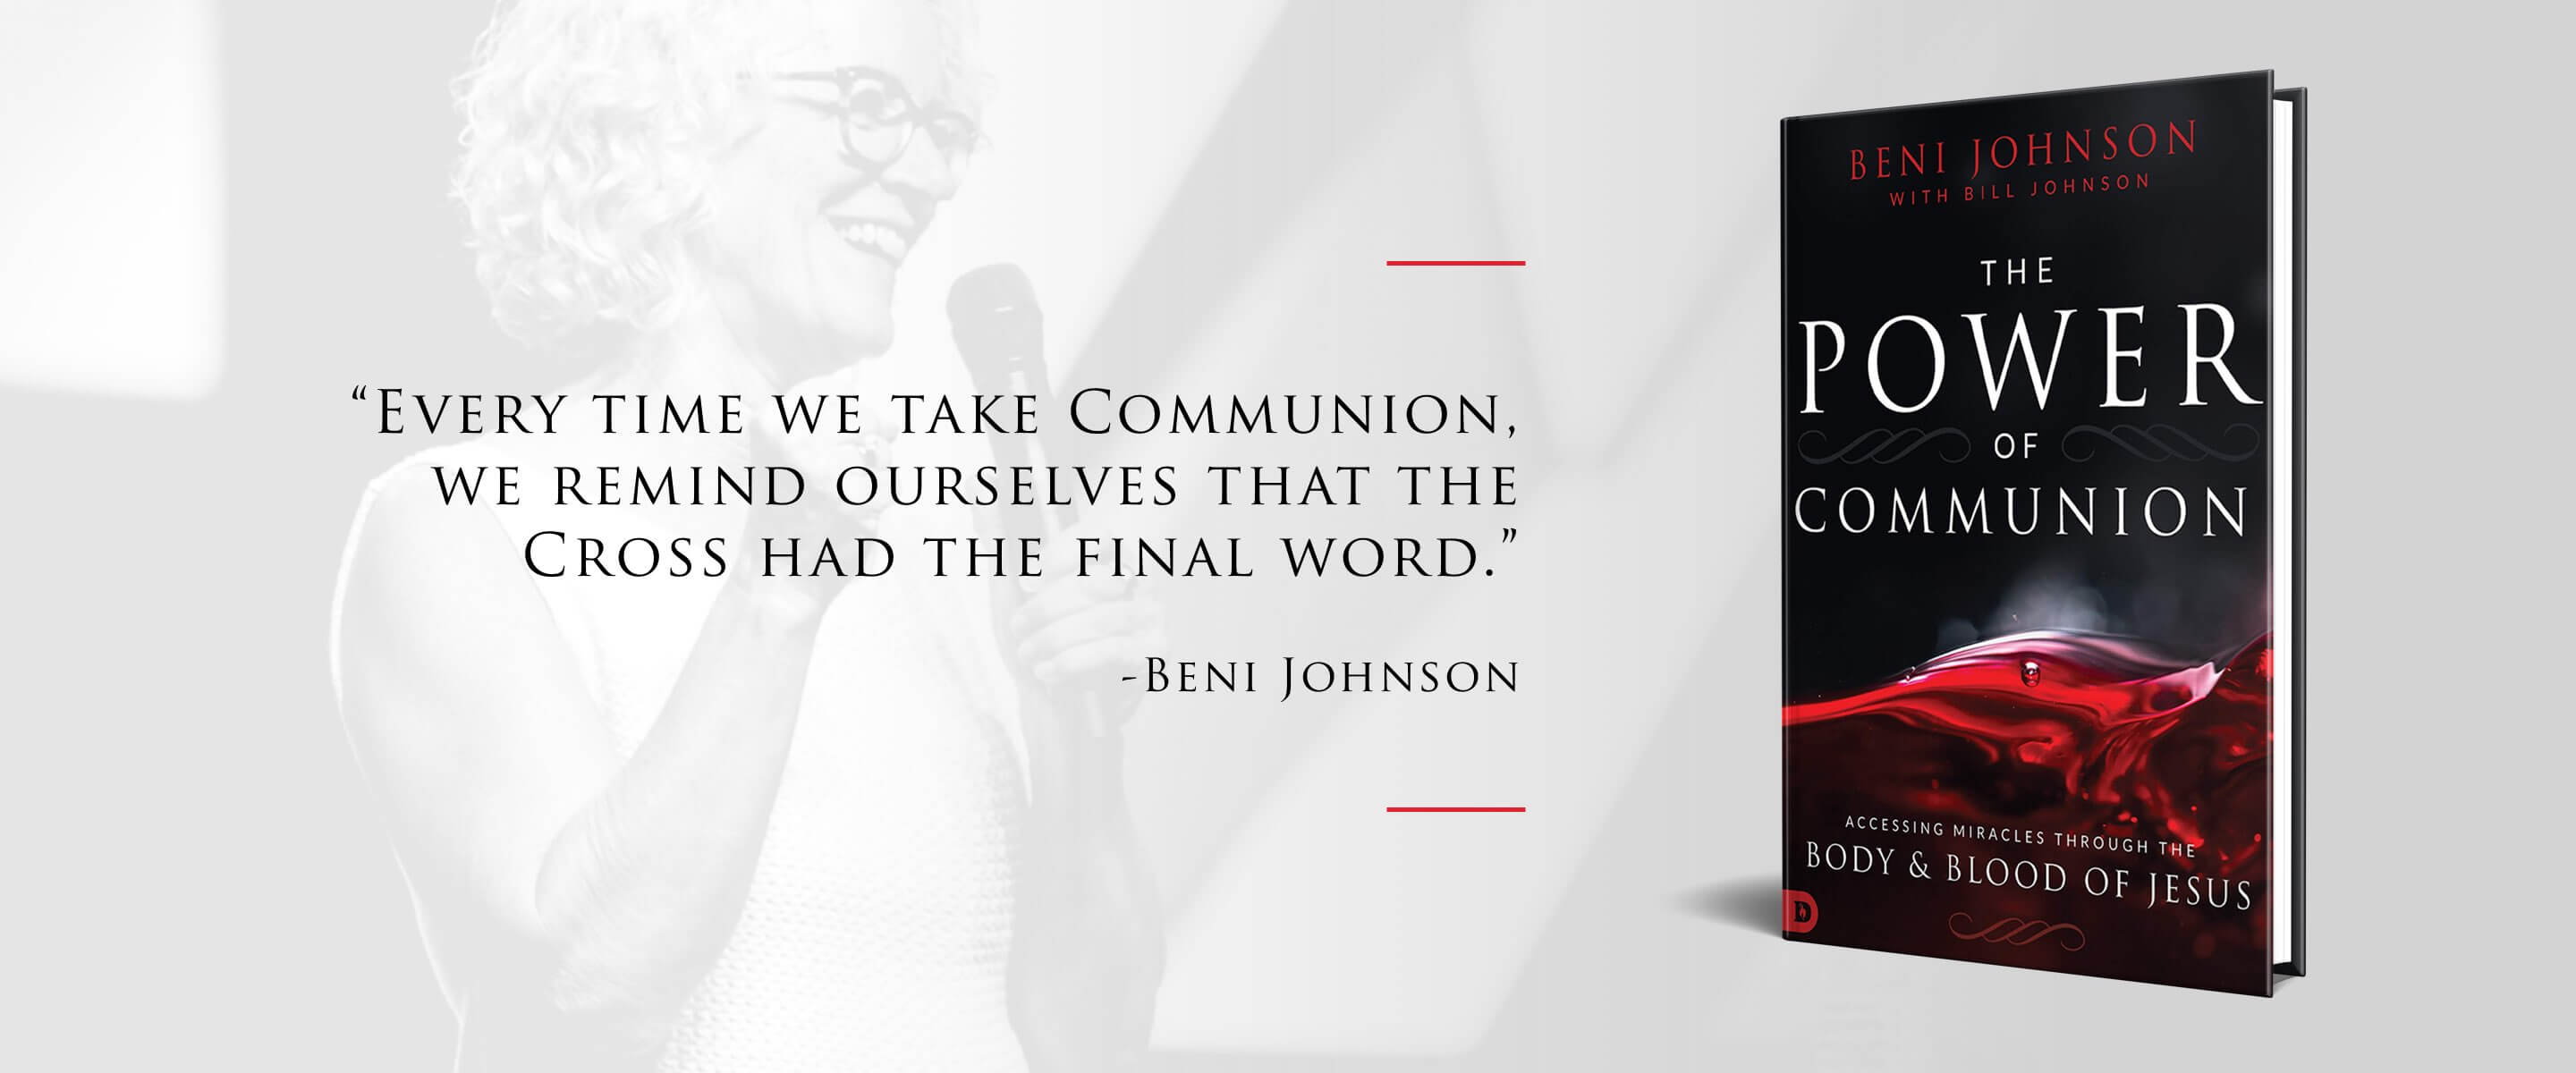 The Power of Communion By Beni Johnson